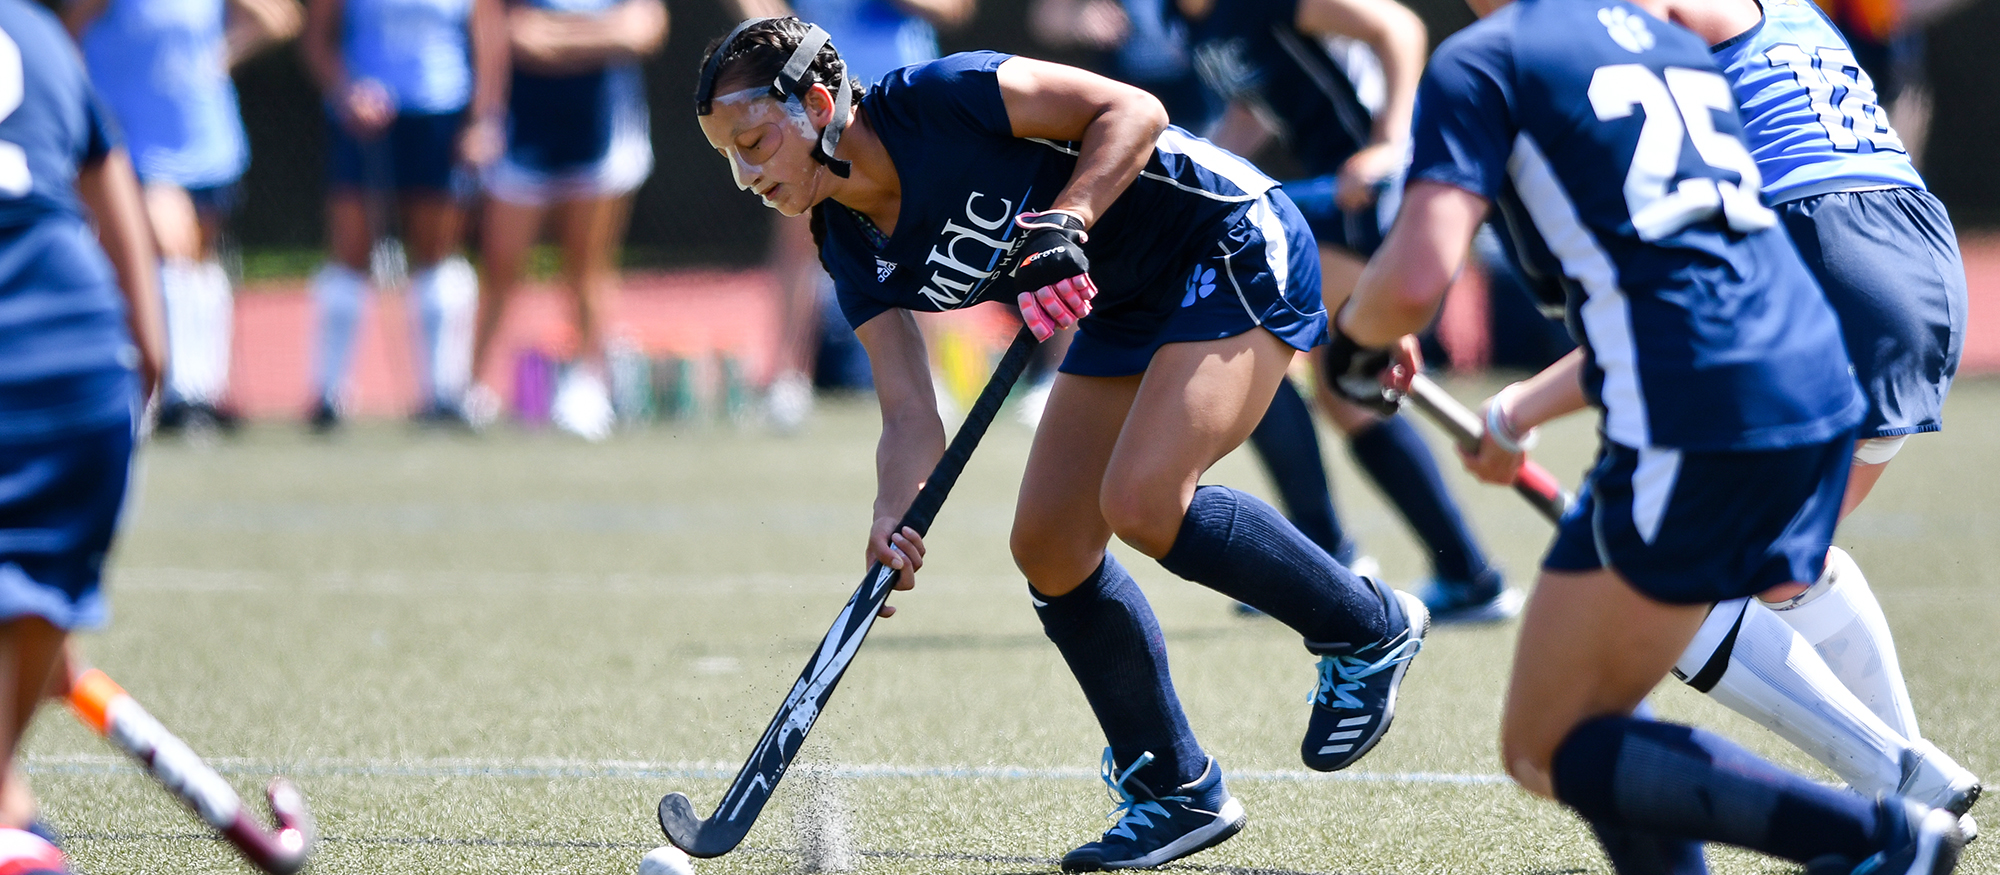 Field Hockey Falls Short of WPI, 3-0, in NEWMAC Championship Quarterfinals